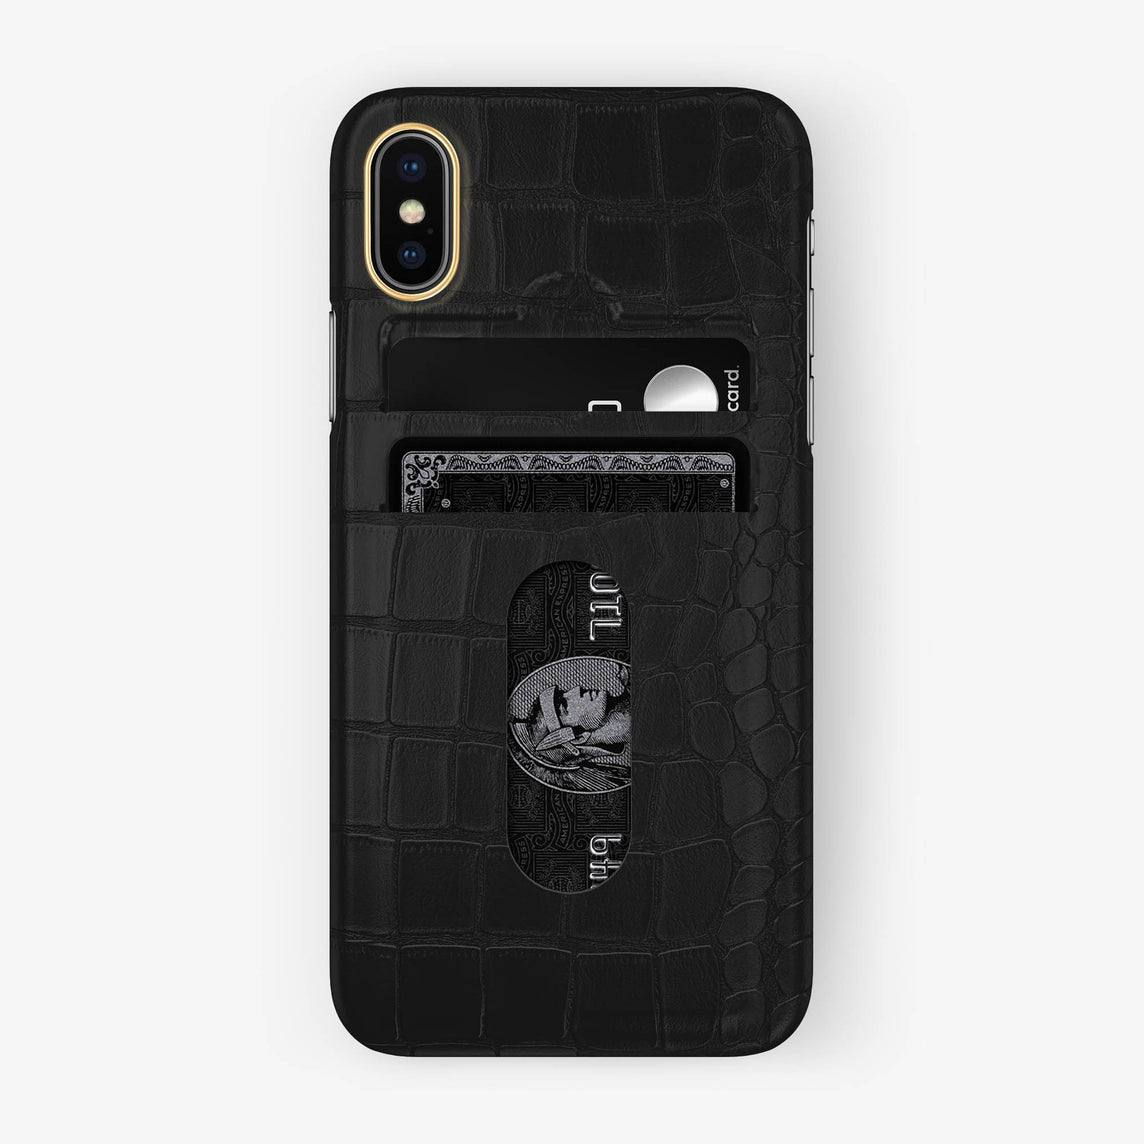 Alligator [iPhone Card Holder Case] [model:iphone-x-case] [colour:phantom-black] [finishing:yellow-gold] - Hadoro